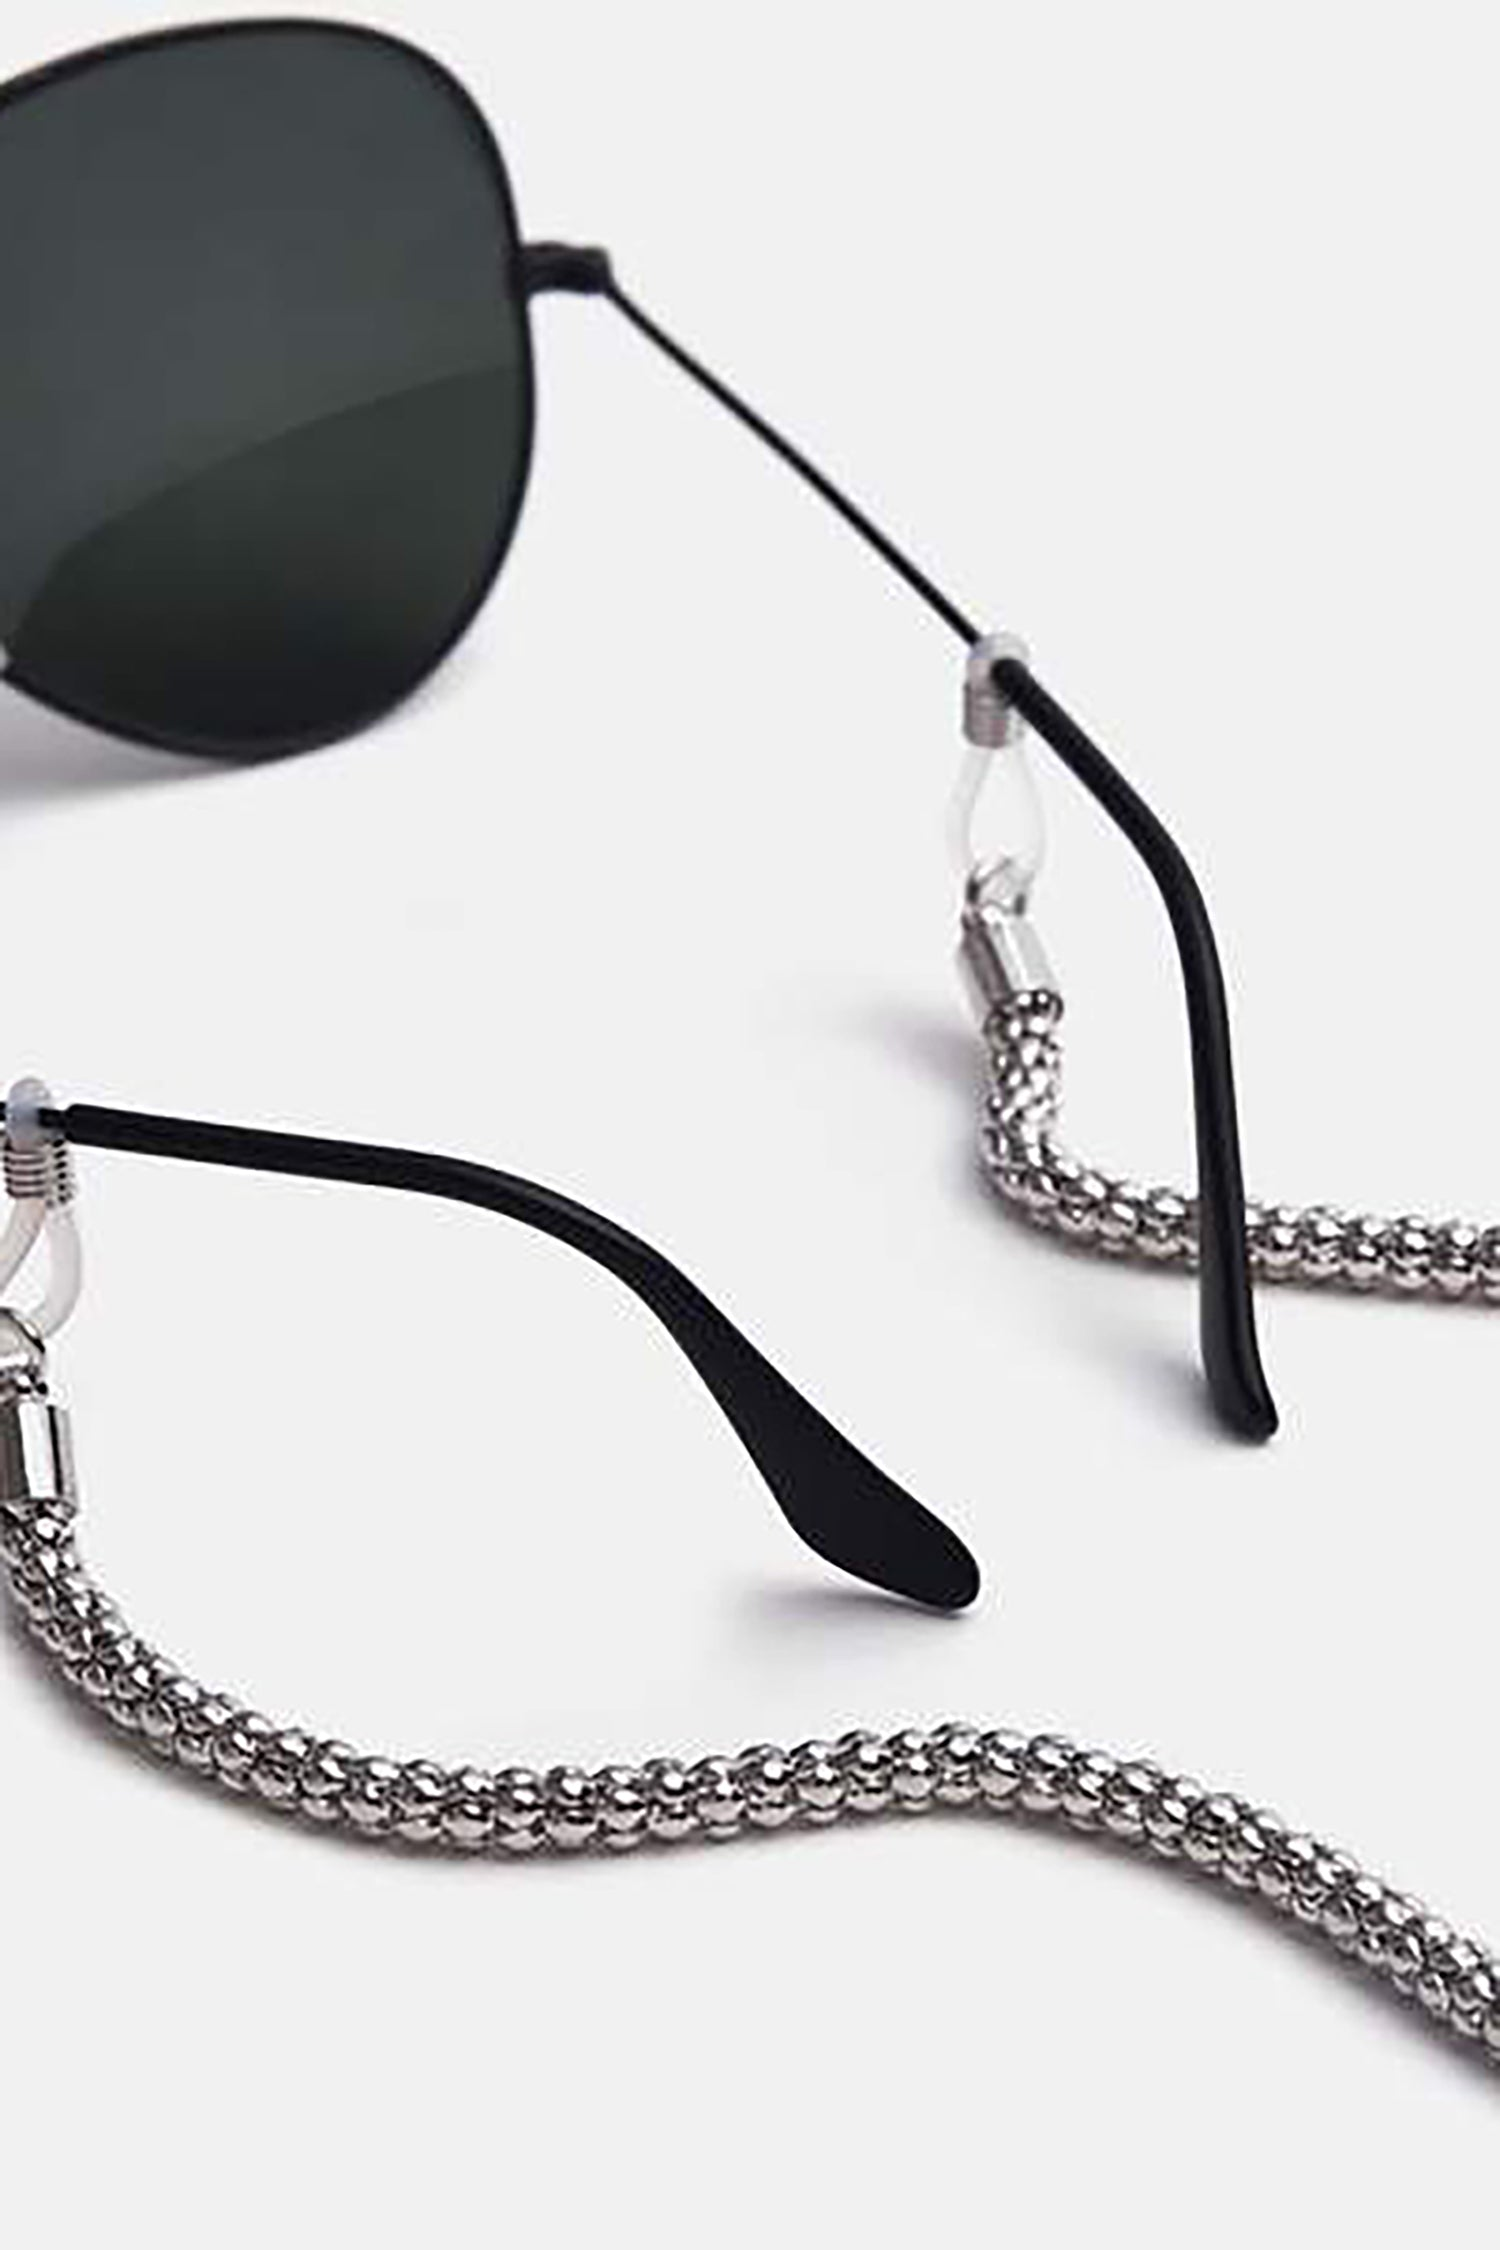 Mr Strappy Chain - Silver